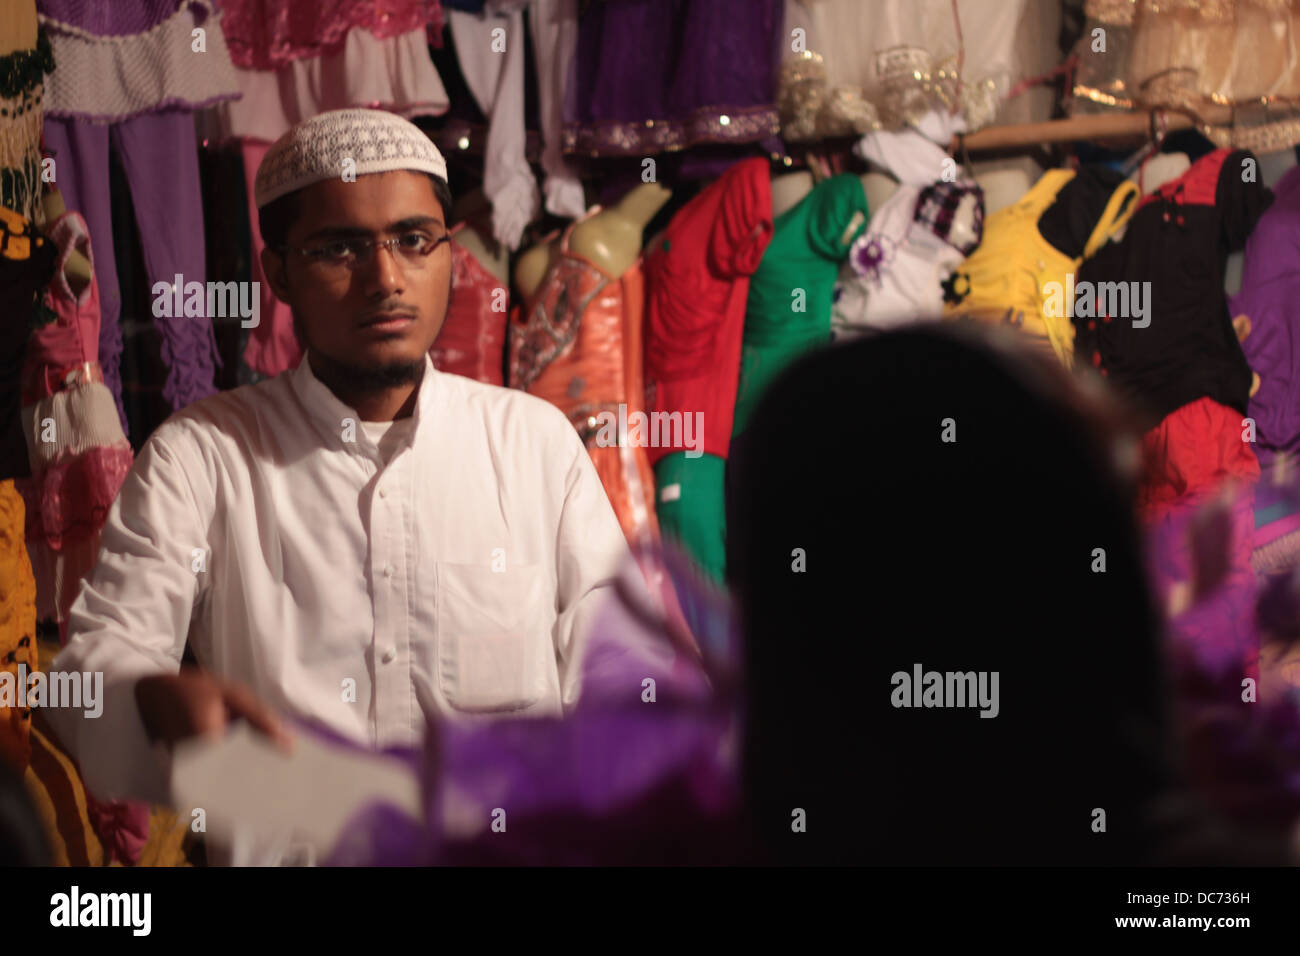 A young Muslim boy sells garments in Delhi, India, on the Eid festival. - Stock Image